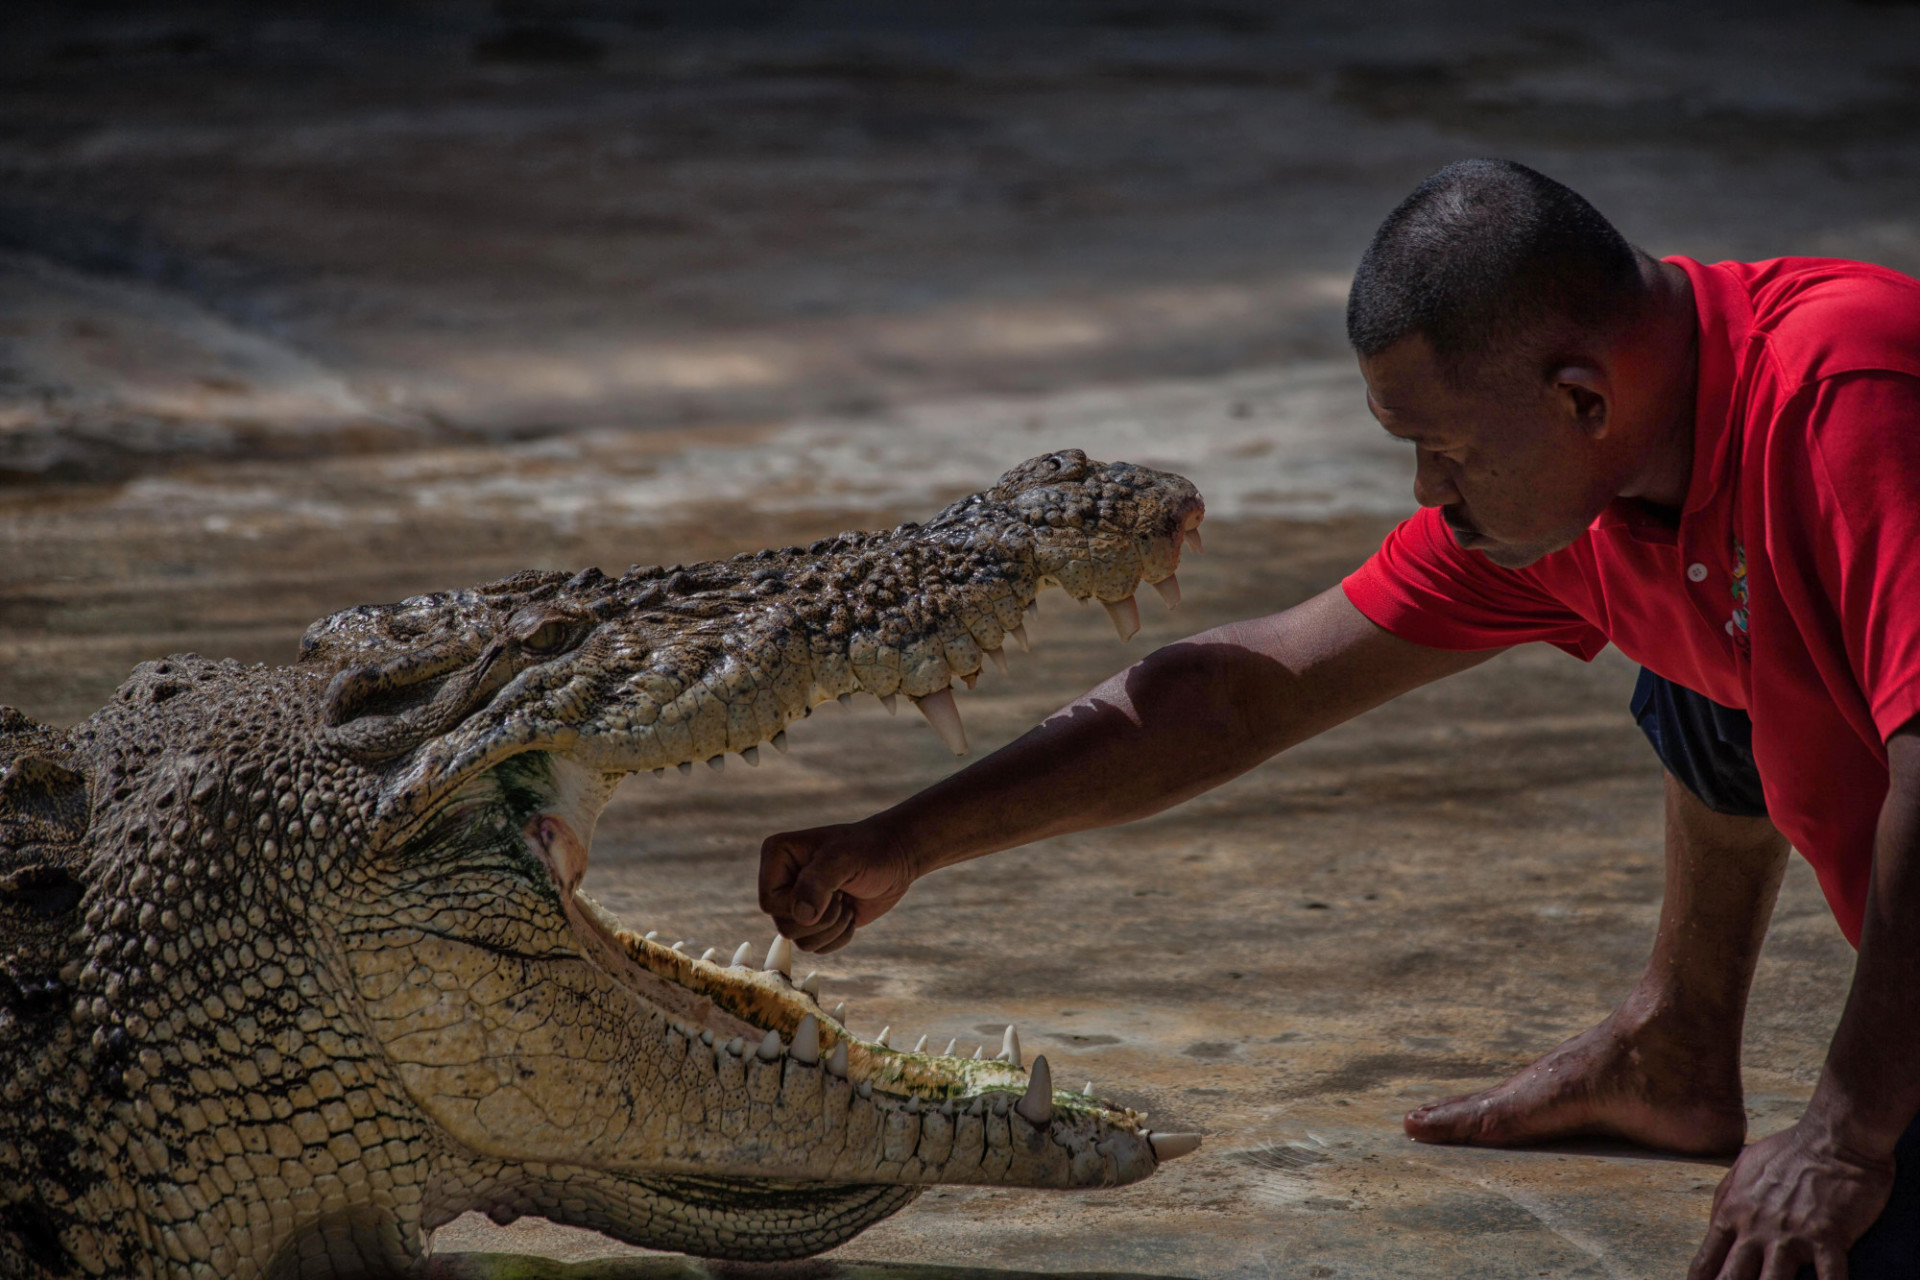 Man holding his arm in the mouth of a crocodile